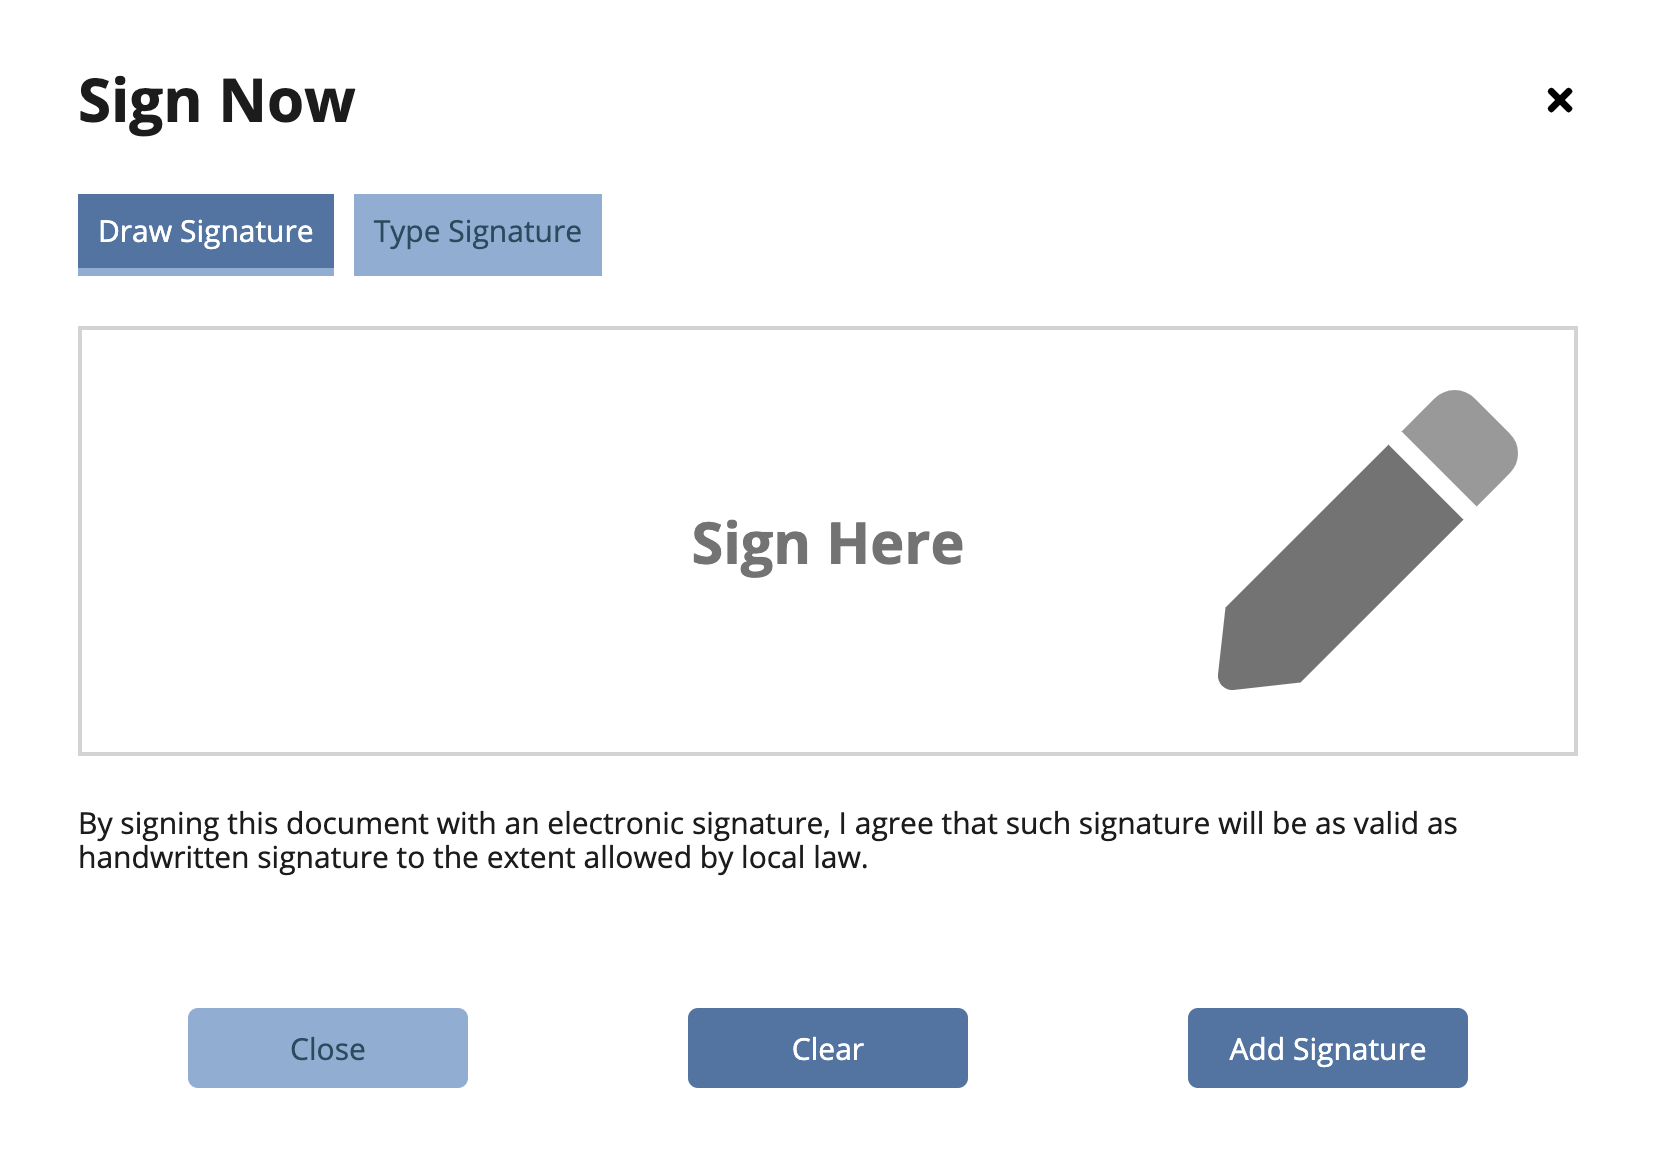 Signature box display with option to type or draw e-signature